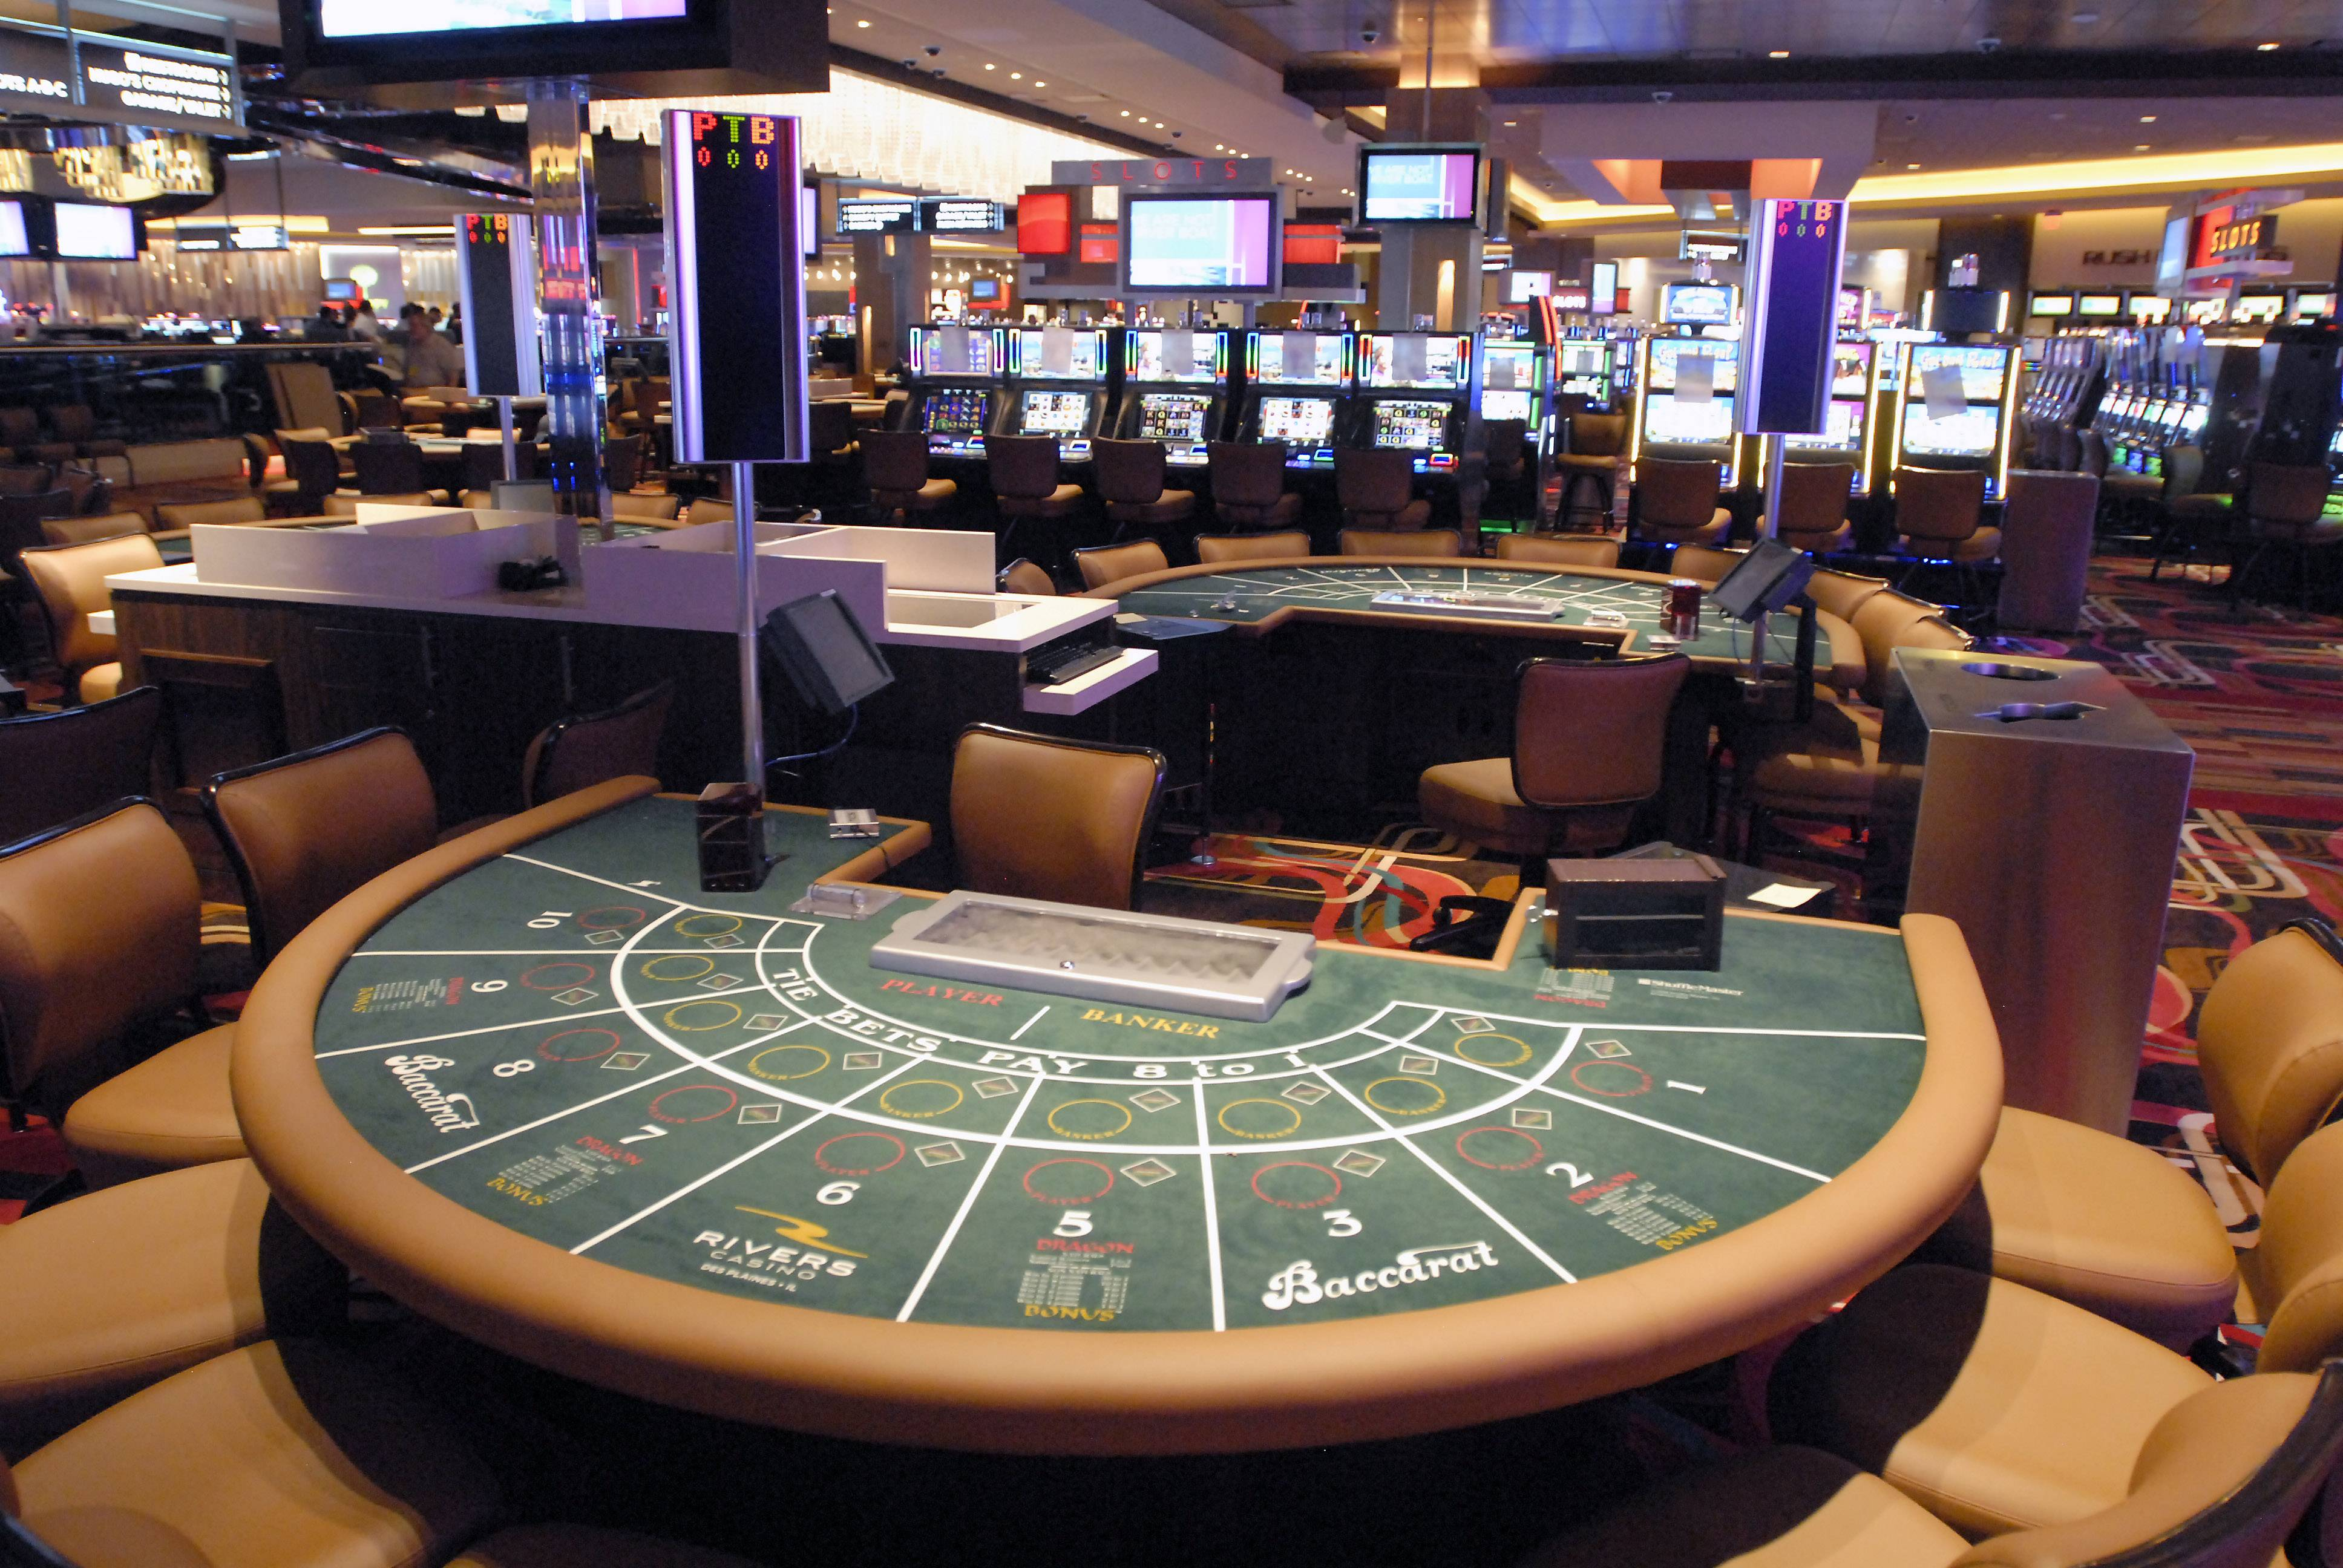 Rivers casino chicago poker table